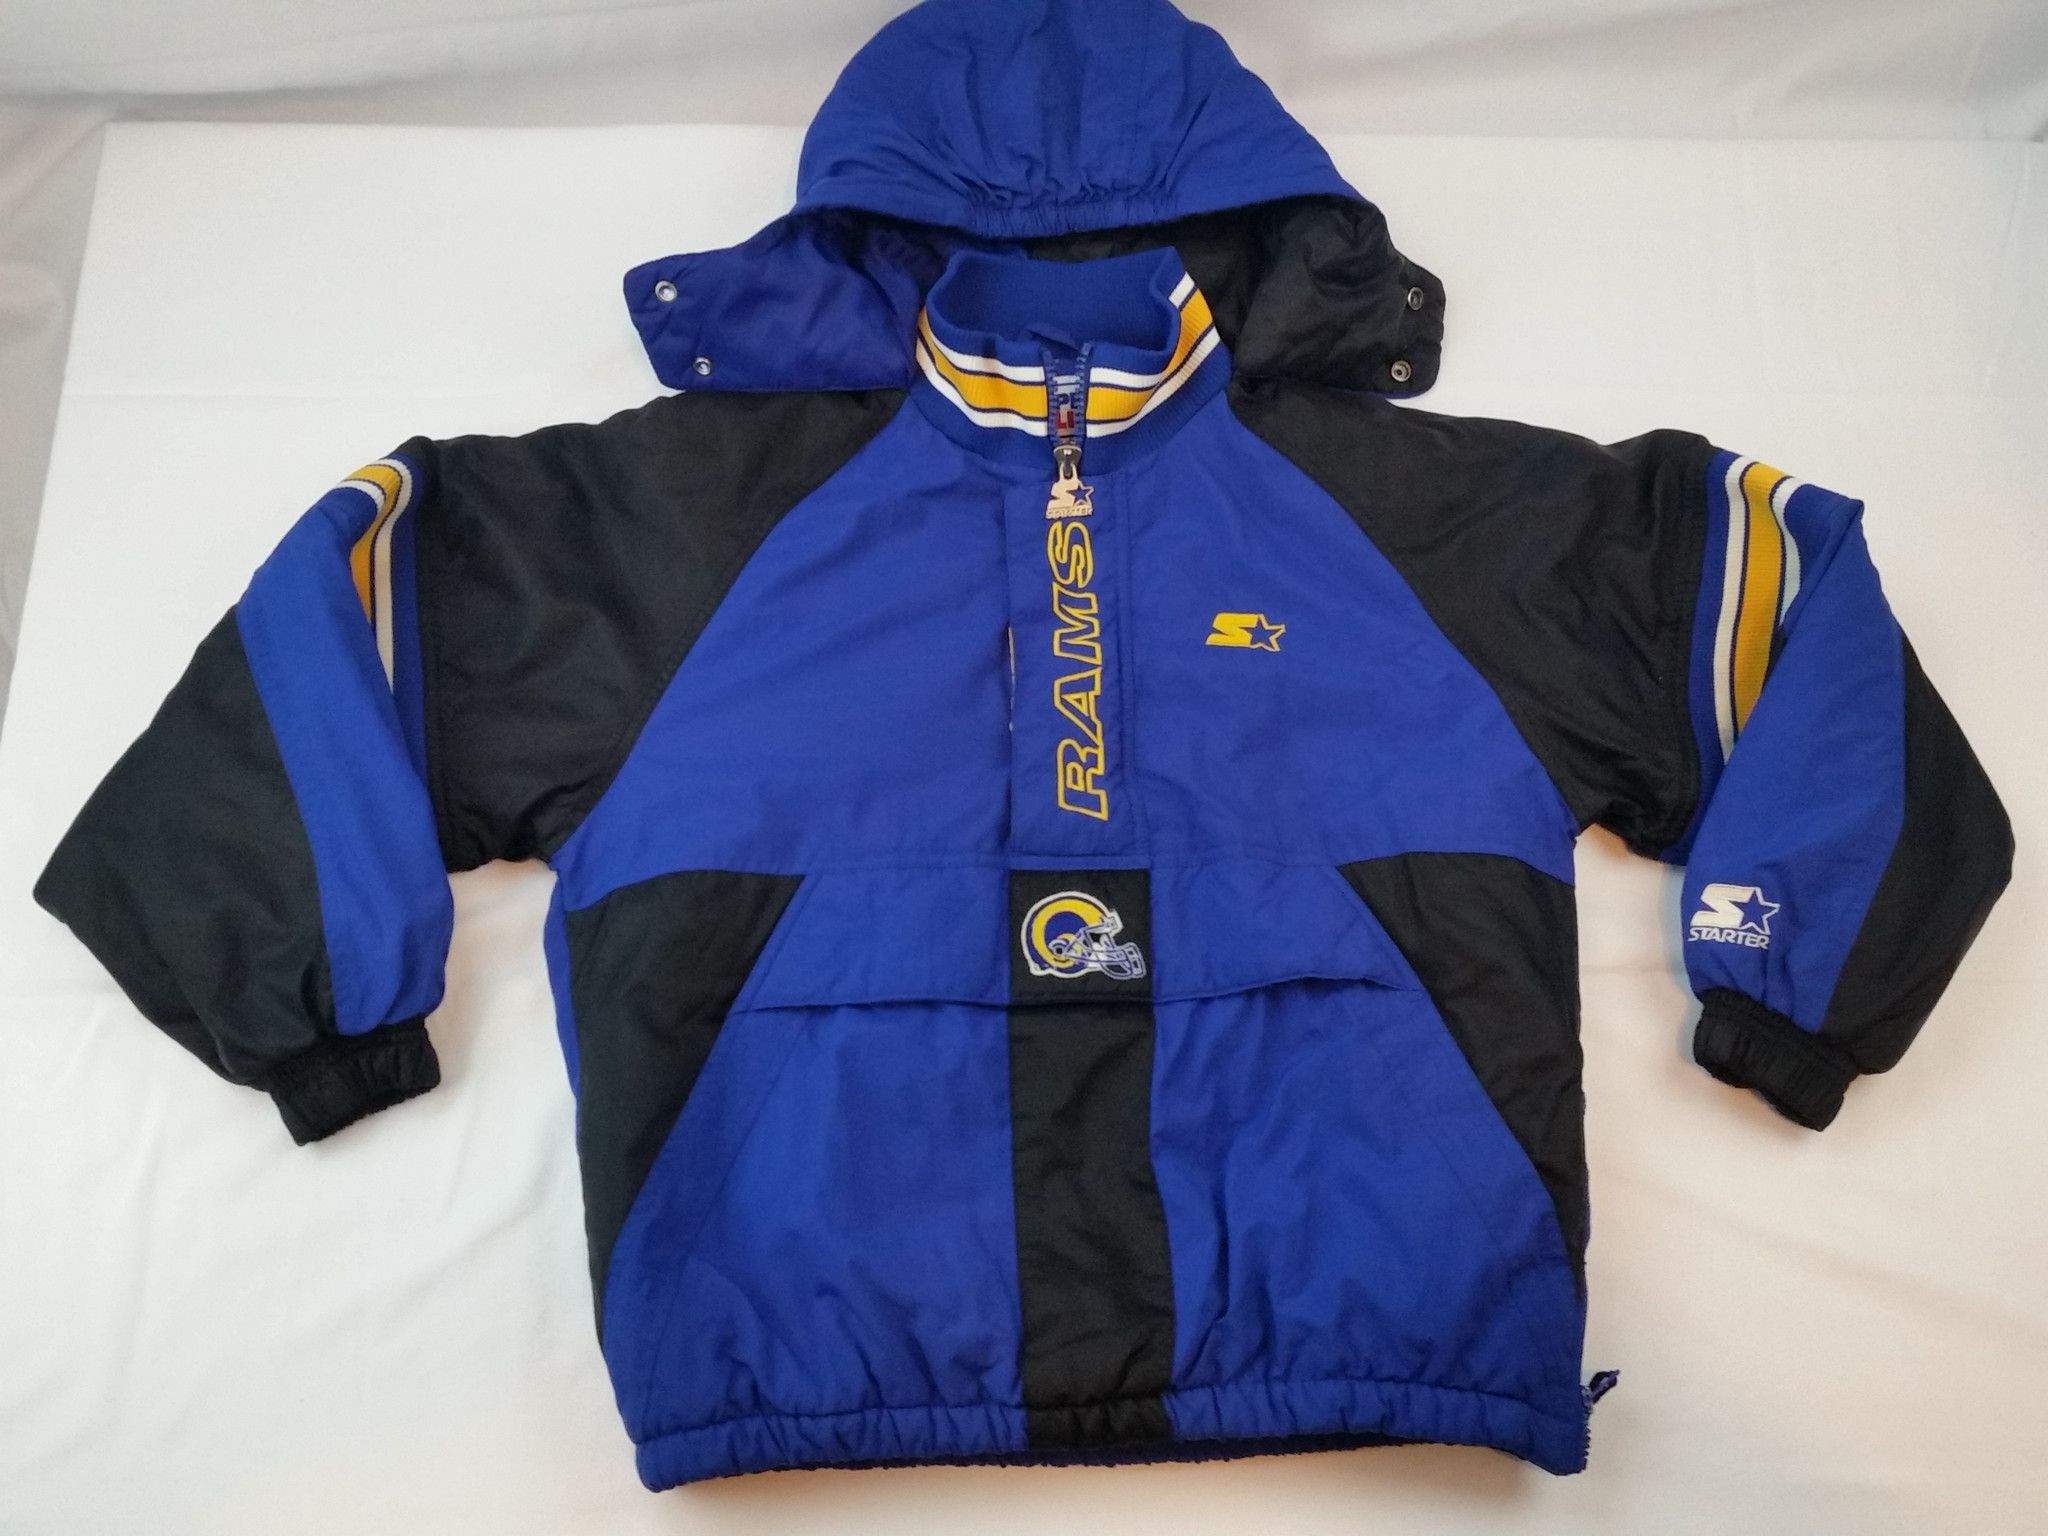 the best attitude 72dd9 843ed Los Angeles Rams Starter Jacket Vintage NFL Pro Line Coat St ...